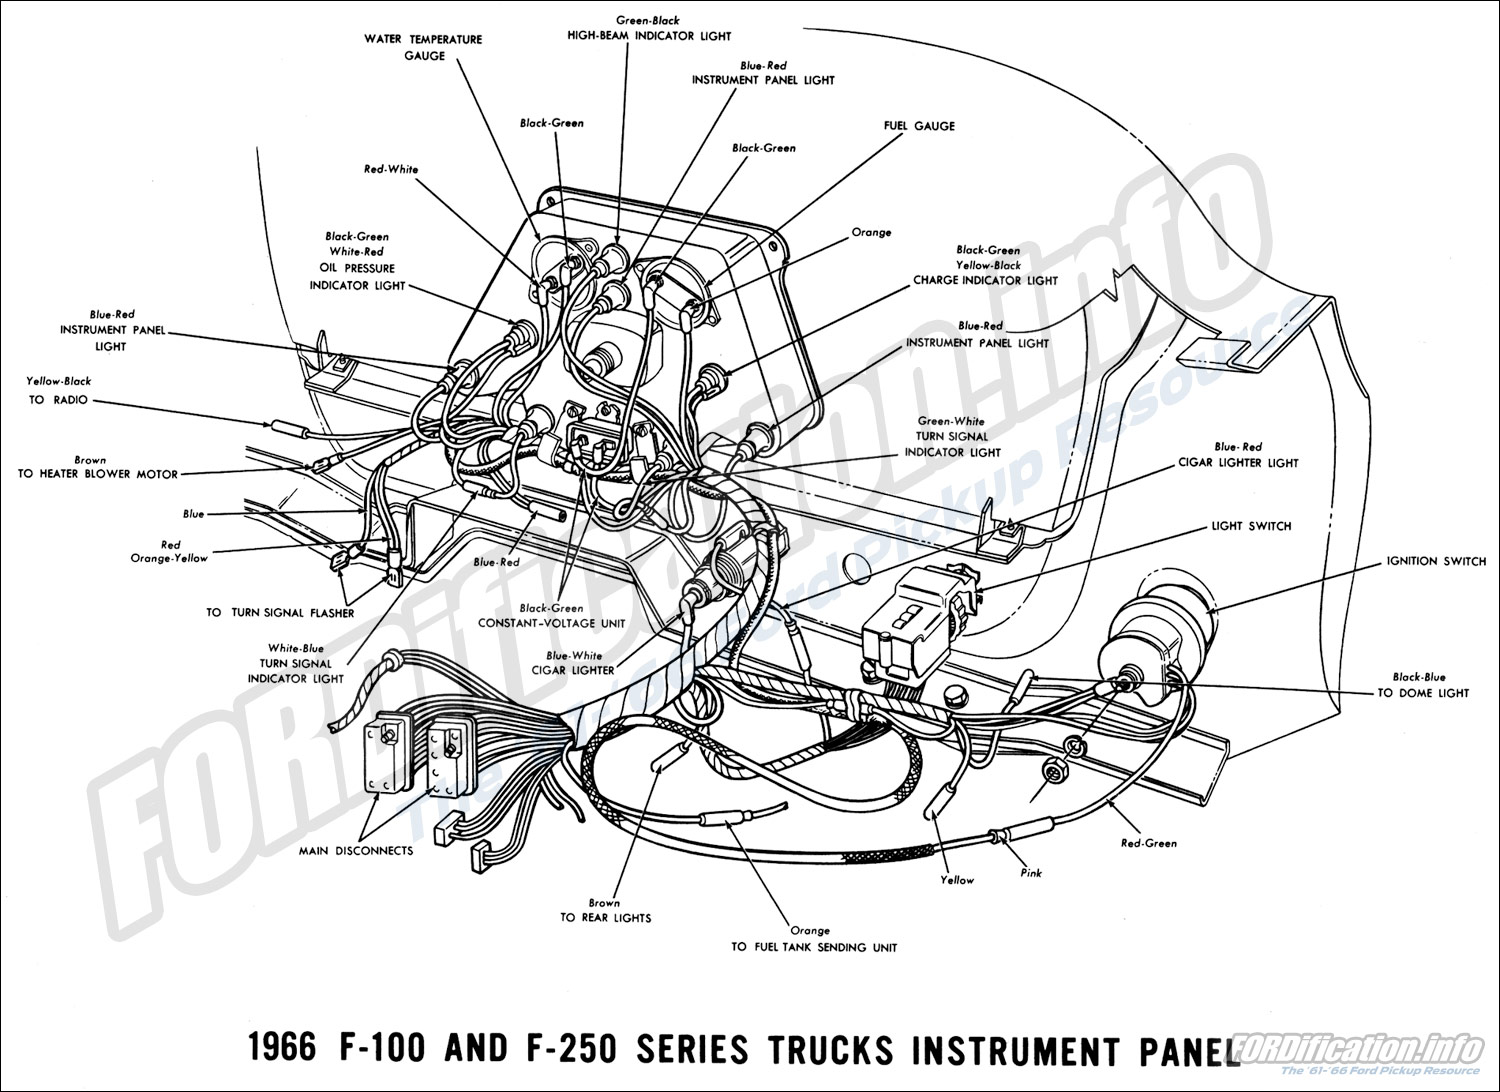 1966 ford truck wiring diagrams fordification info the '61 '66 ford f100 wiring diagrams 1966 f 100 & f 250 instrument panel